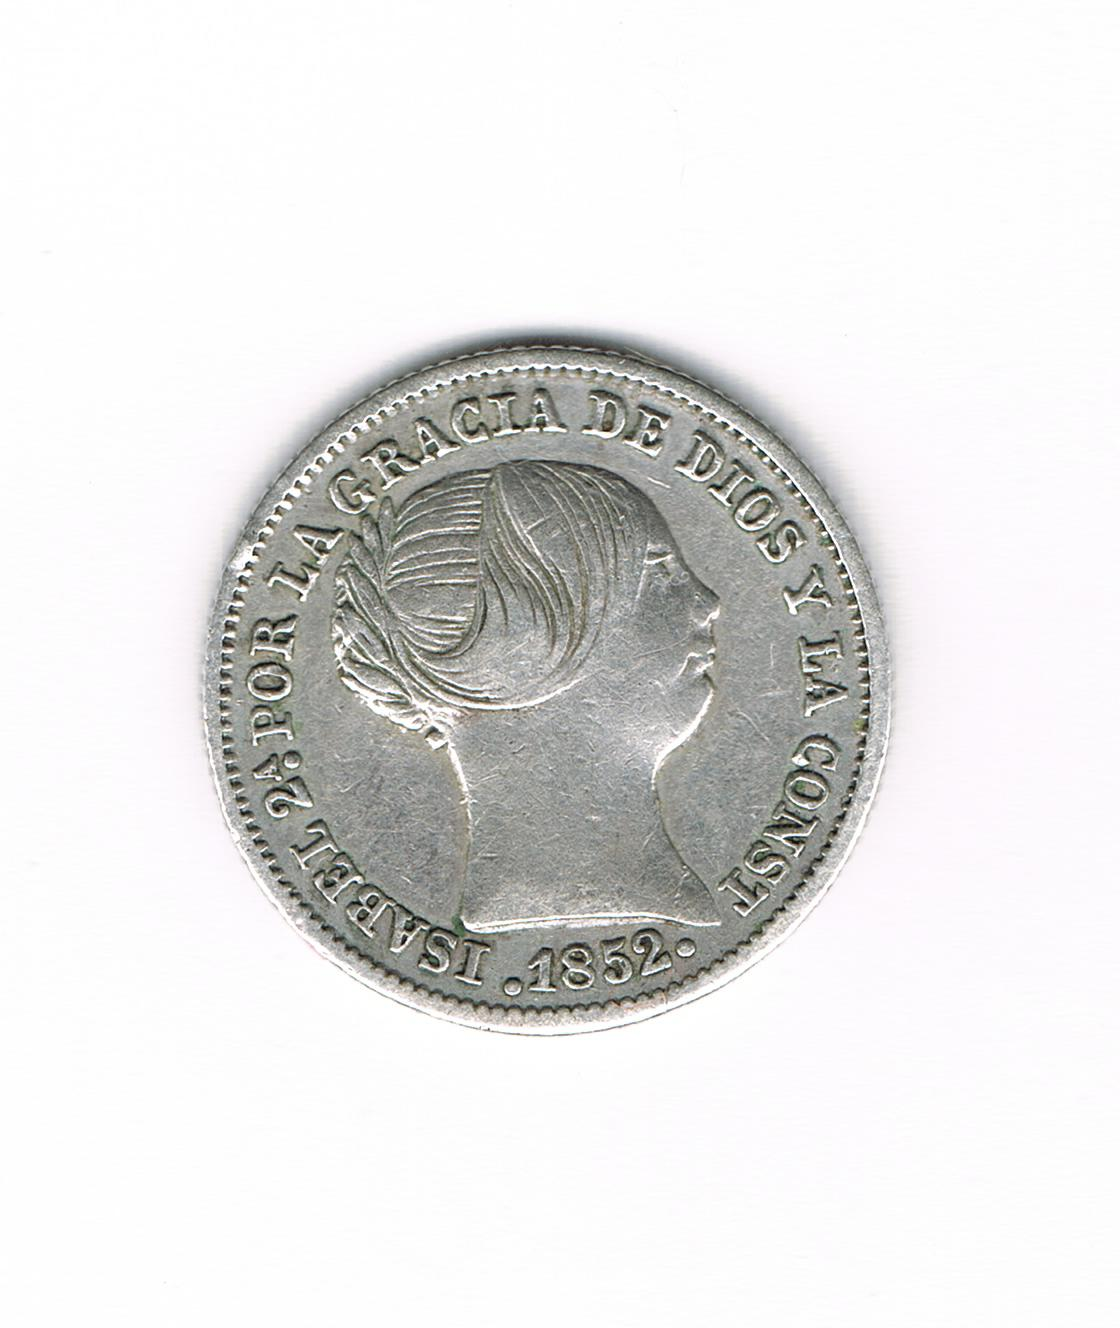 1 Real 1852. Isabel II - Madrid. 1_Real_Plata_Isabel_II_1852_Madrid